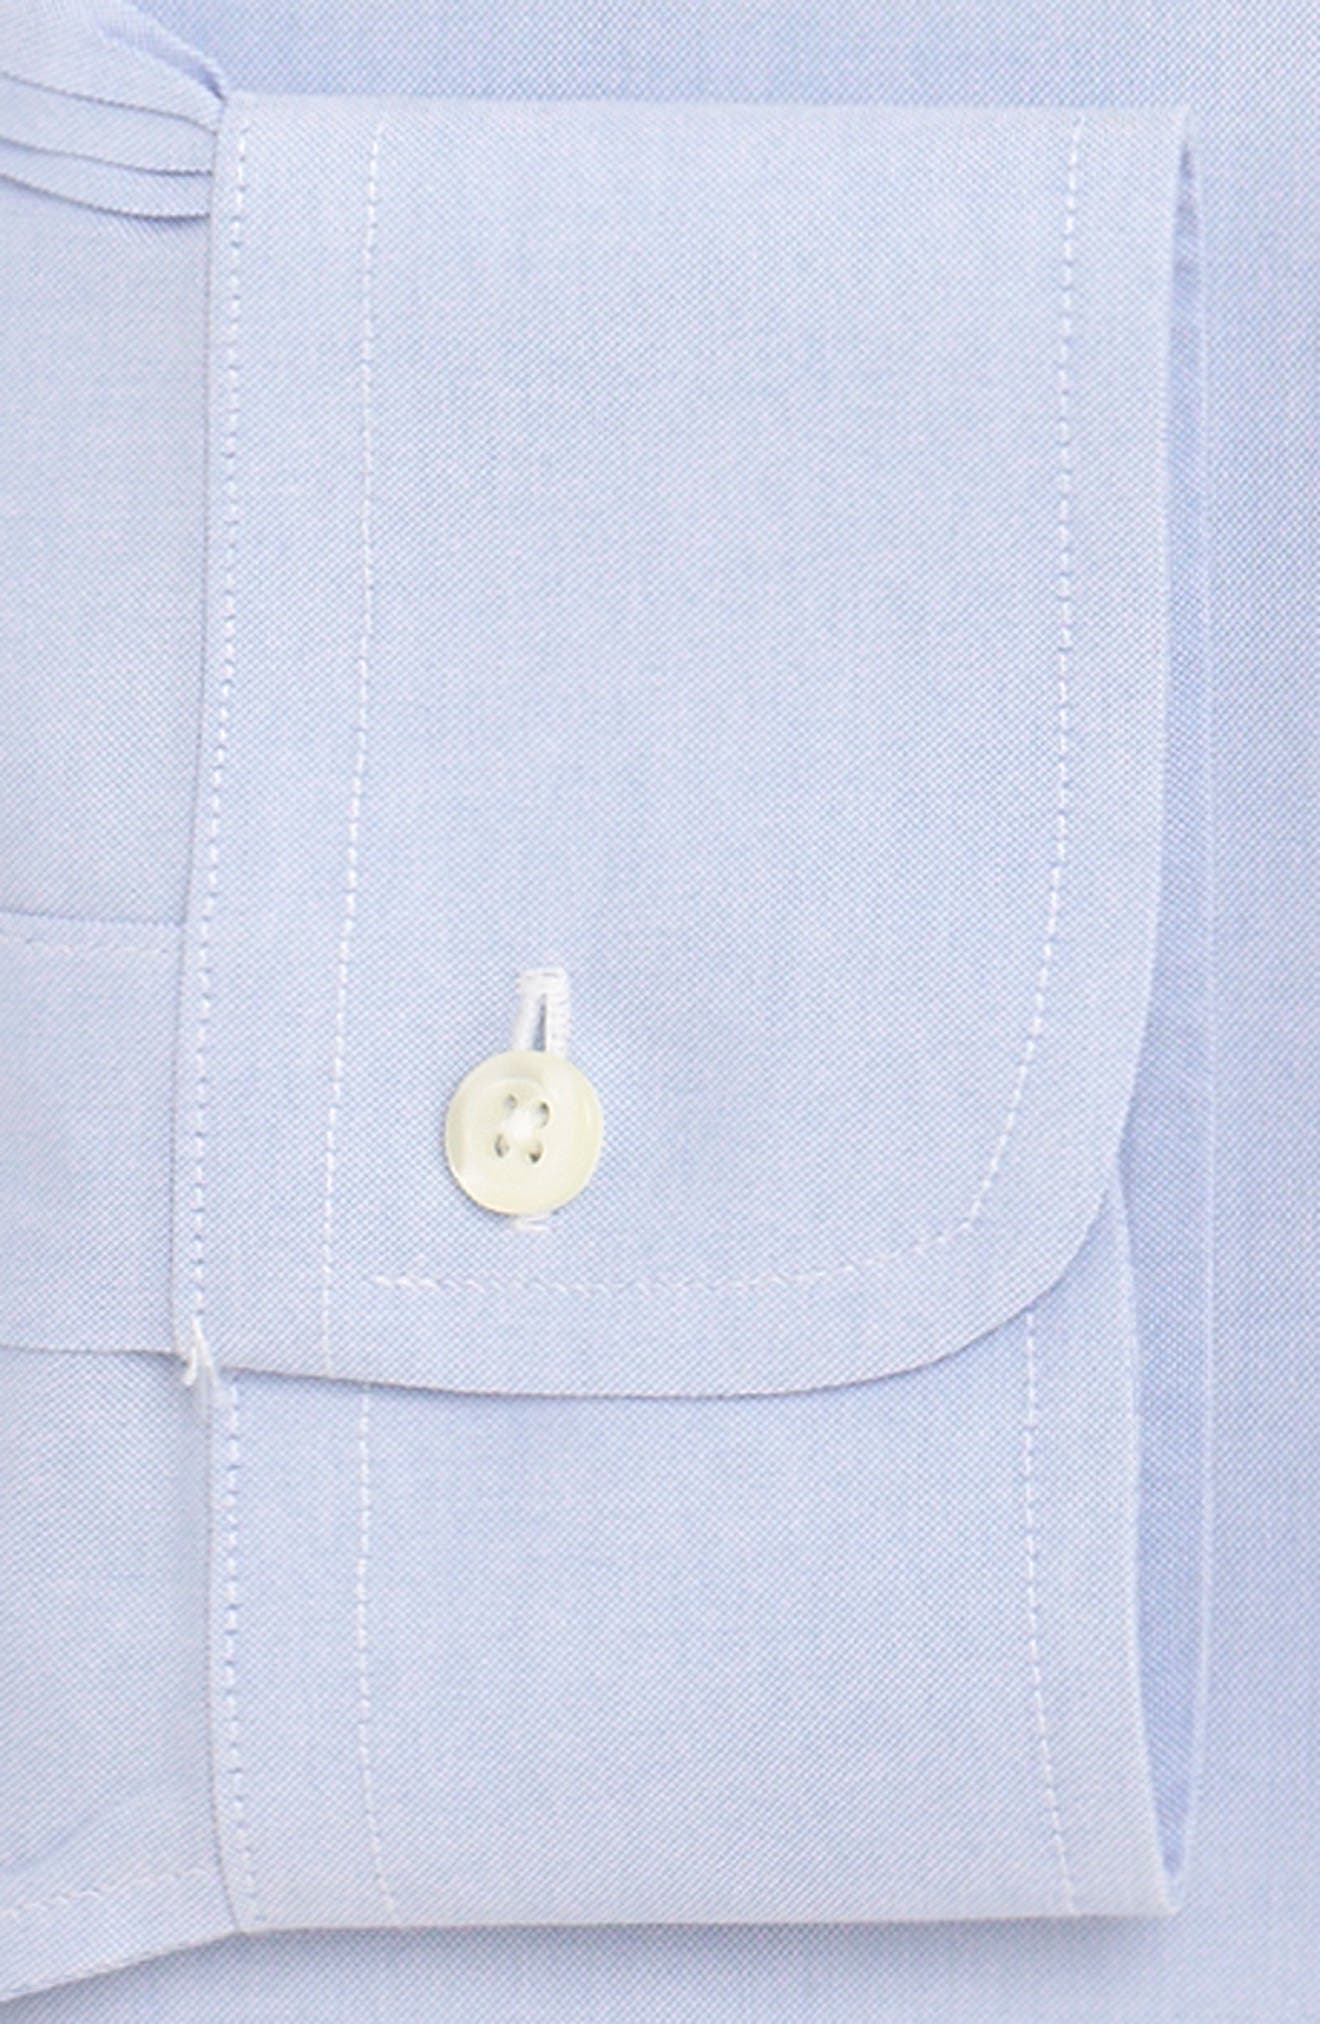 Trim Fit Solid Dress Shirt,                             Alternate thumbnail 2, color,                             LIGHT/ PASTEL BLUE